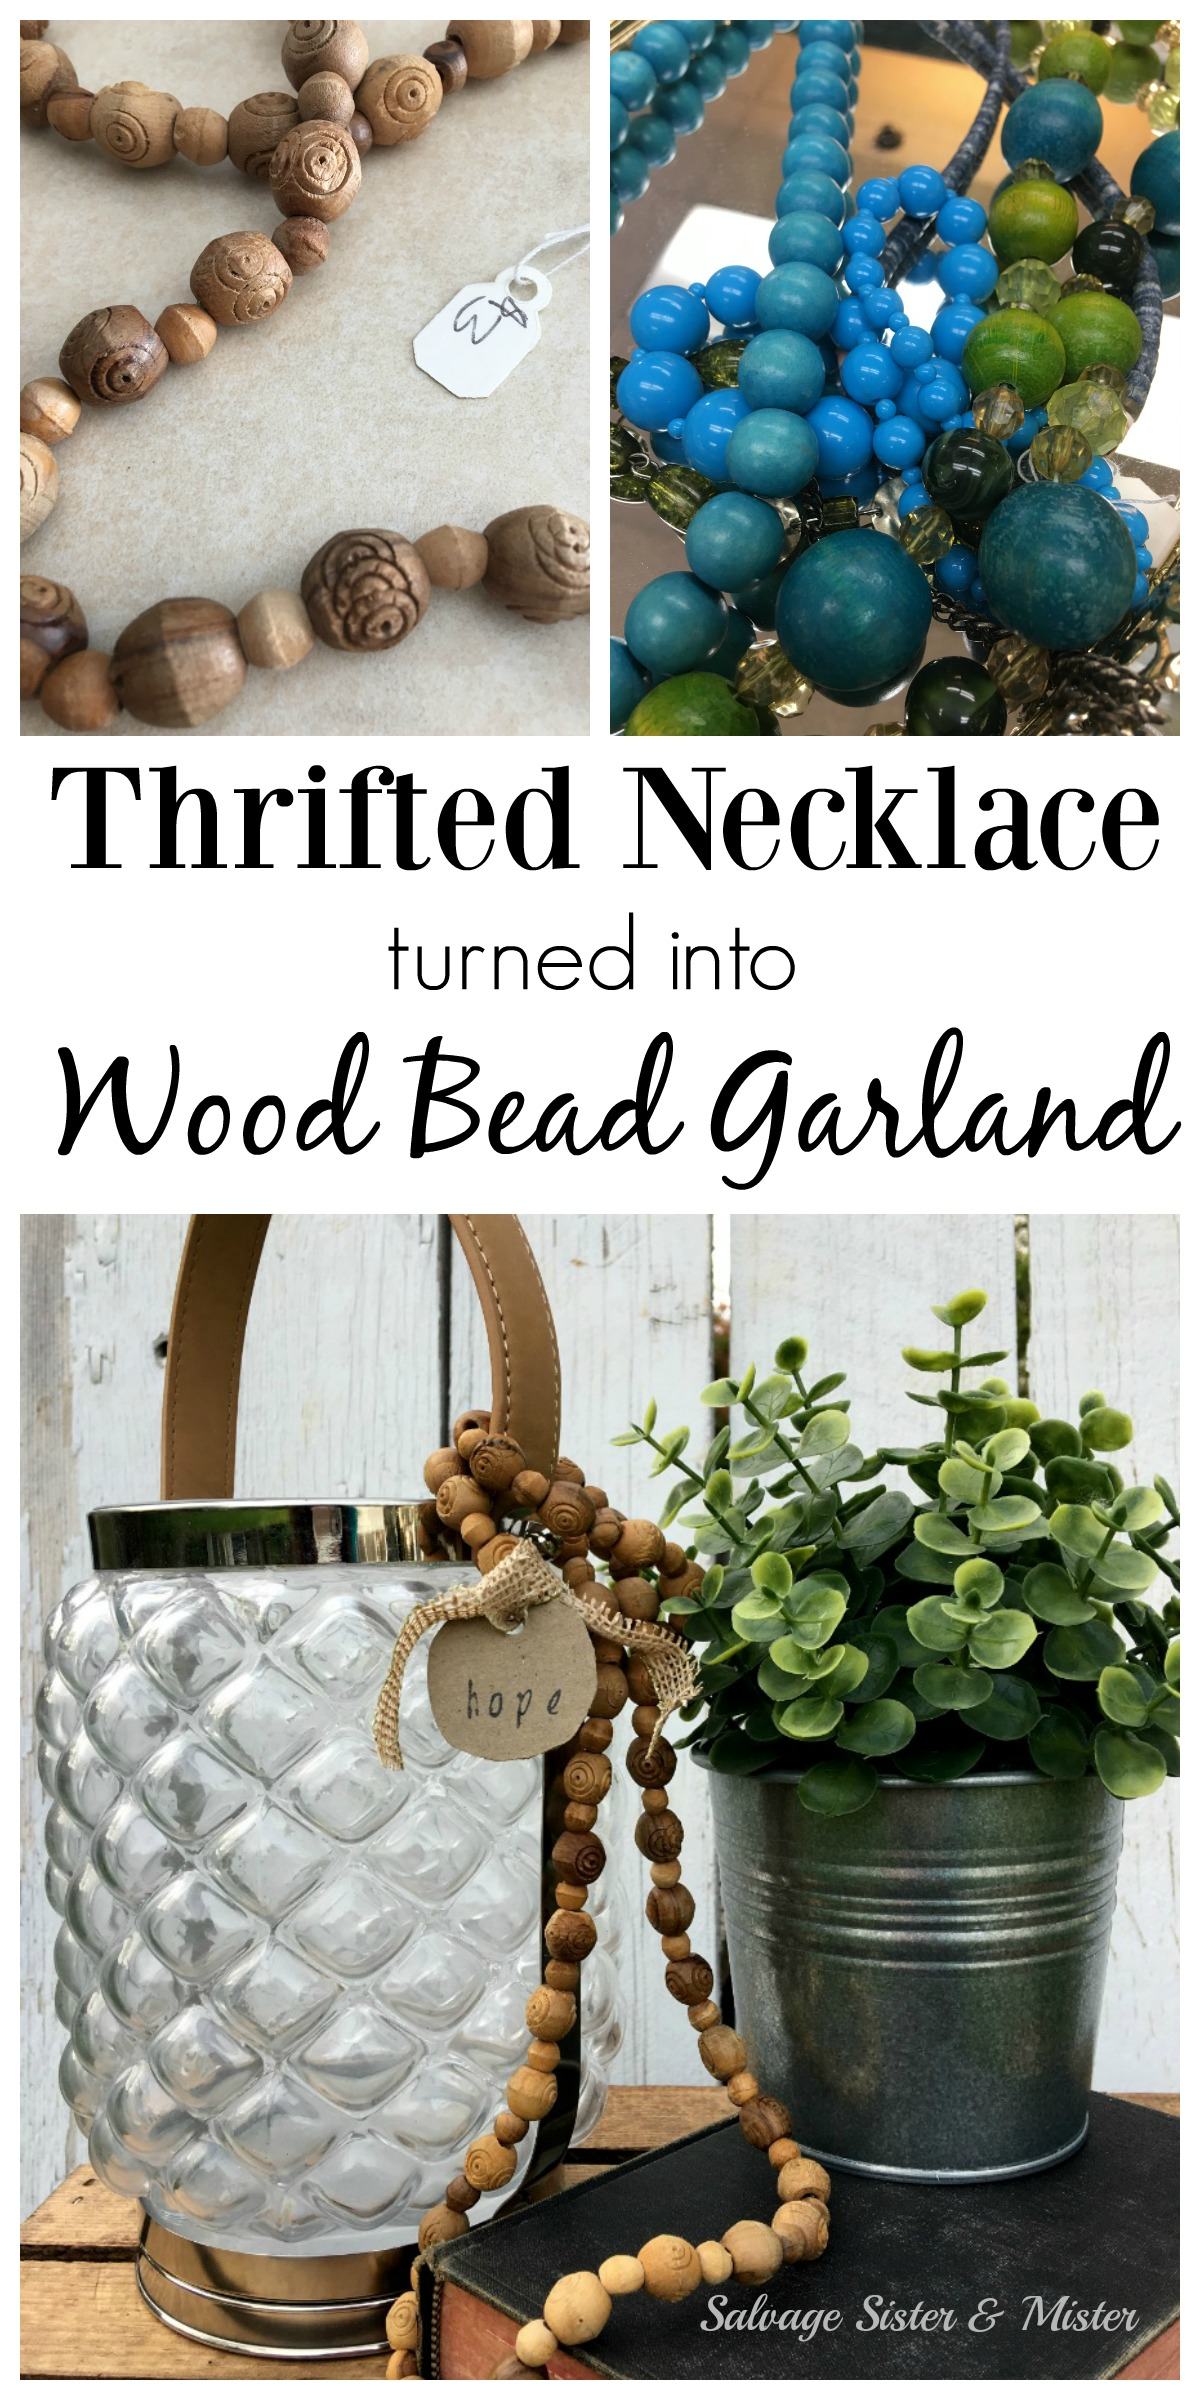 Bubble or round bead necklaces can be reused or upcycled to use as wood bead garland.  This DIY project is super easy and inexpensive to do.  Create a farmhouse vignette with faux wood beads by adding to vases, lanterns, drapping around books, or on a tray.  Easy hoe decor uses soemthing that someone no longer wanted in a new way -waste not want not.  Or chekc your own jewelery stash for beads of your own to use in the craft project.